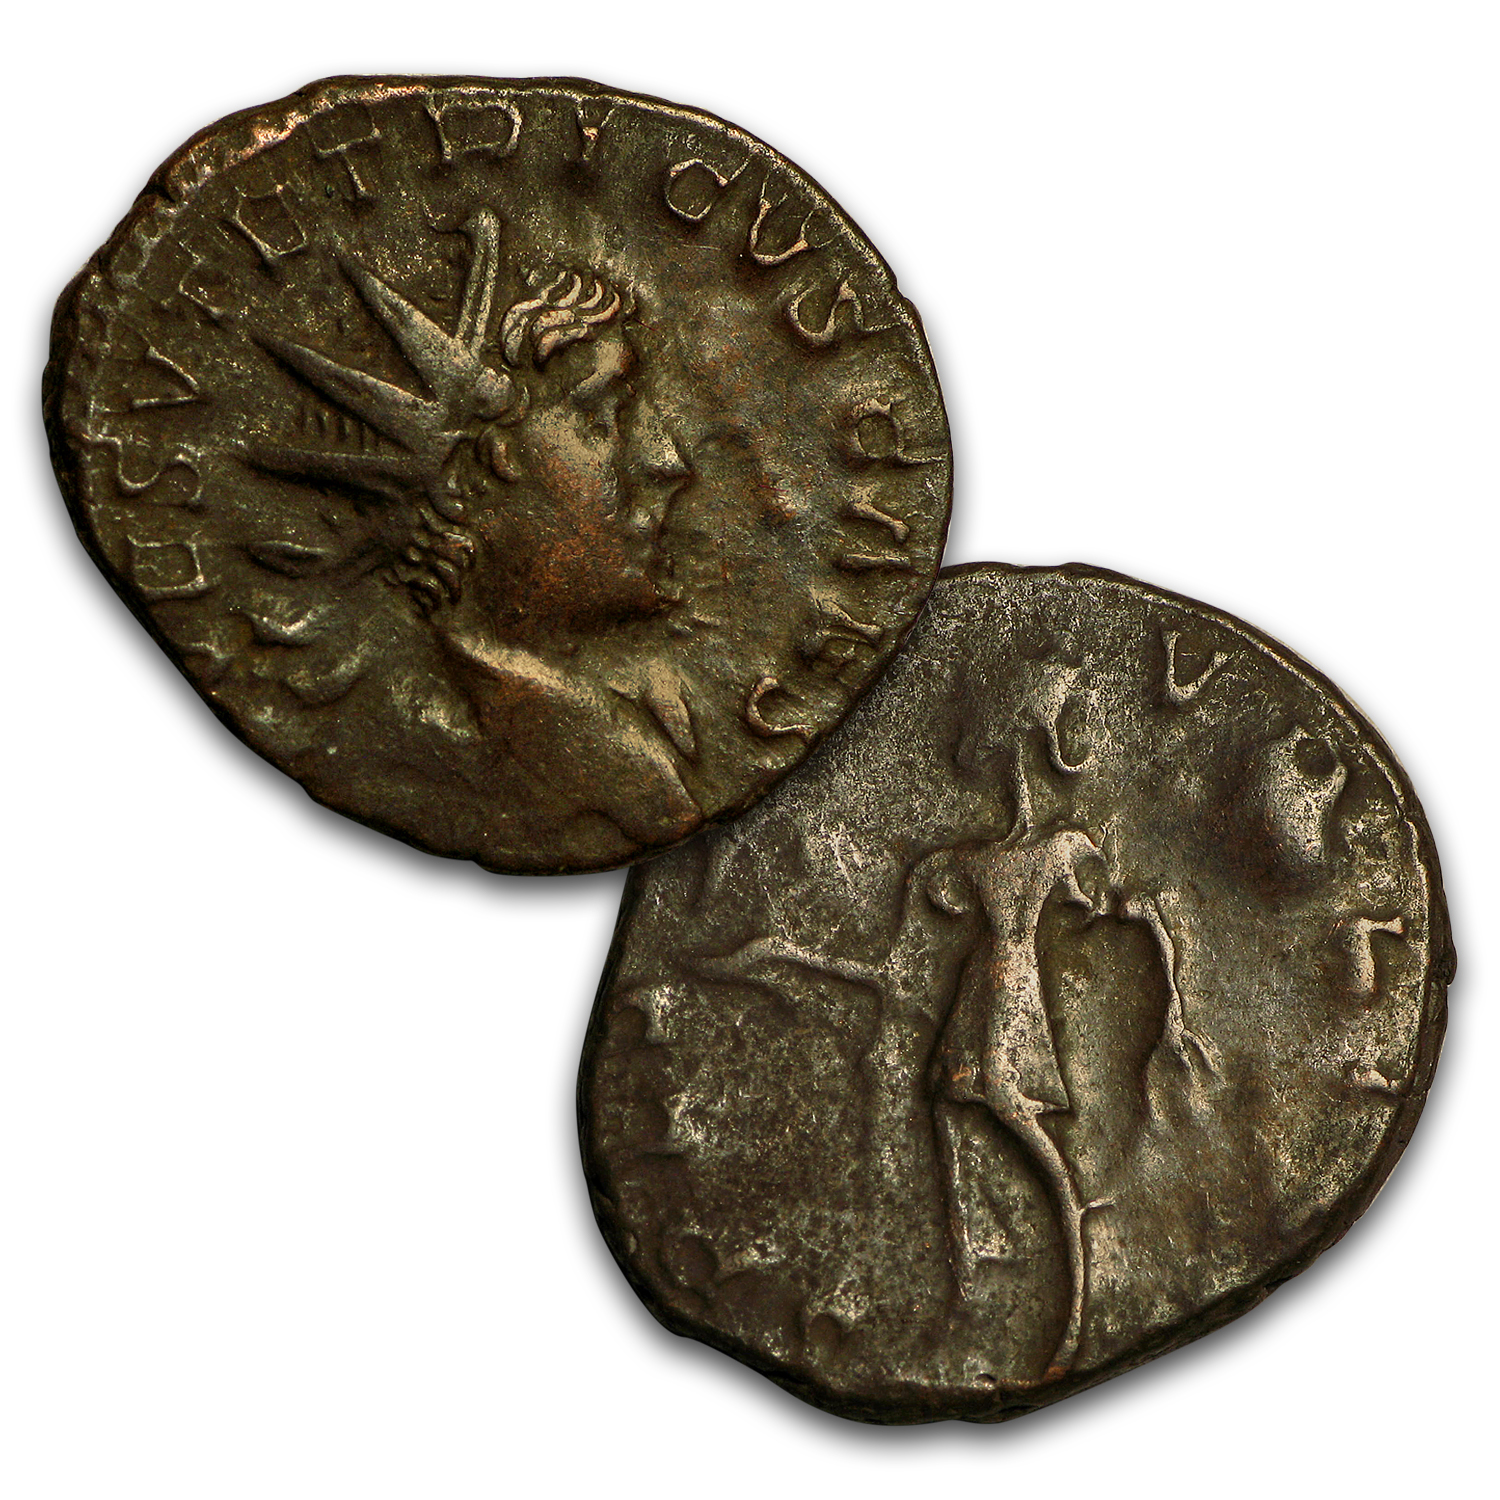 Roman Bronze 8-Coin Collection Rise and Fall of the Gallic Empire